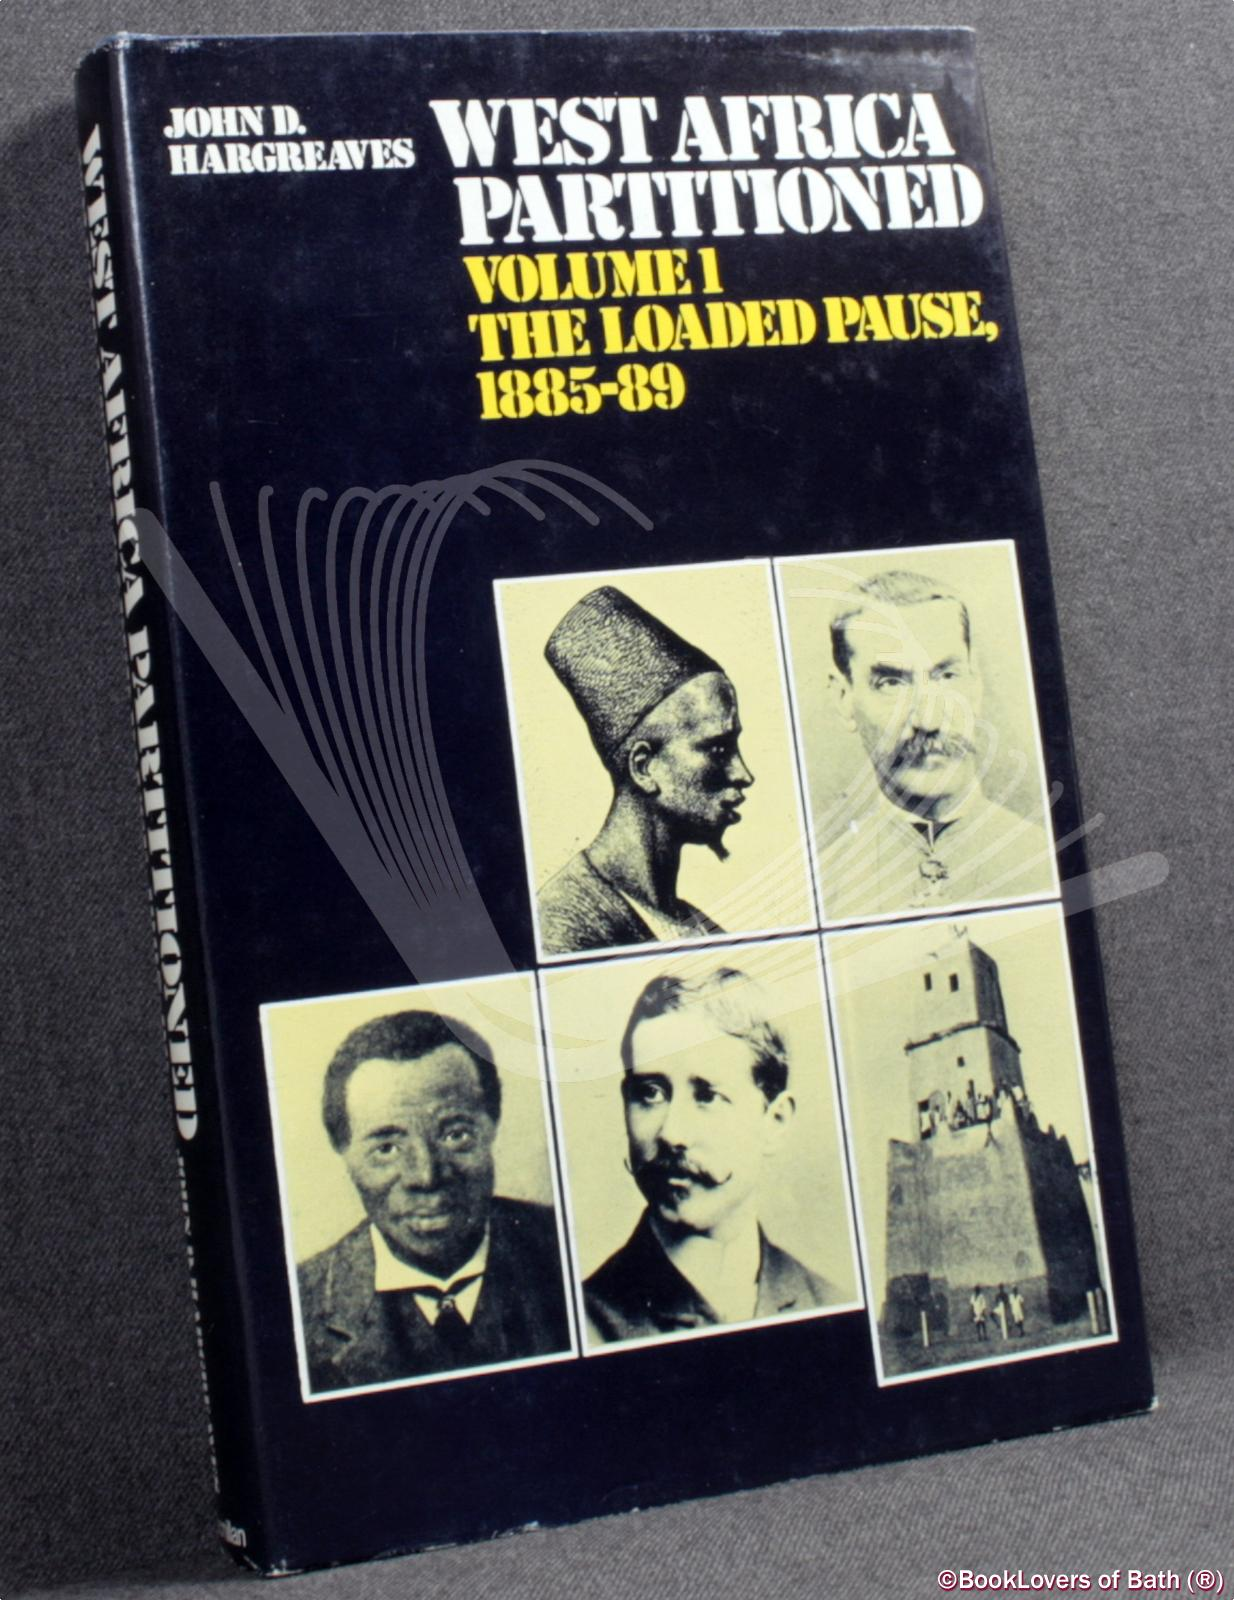 West Africa Partitioned: Volume 1: The Loaded Pause, 1885-89 - John D. Hargreaves